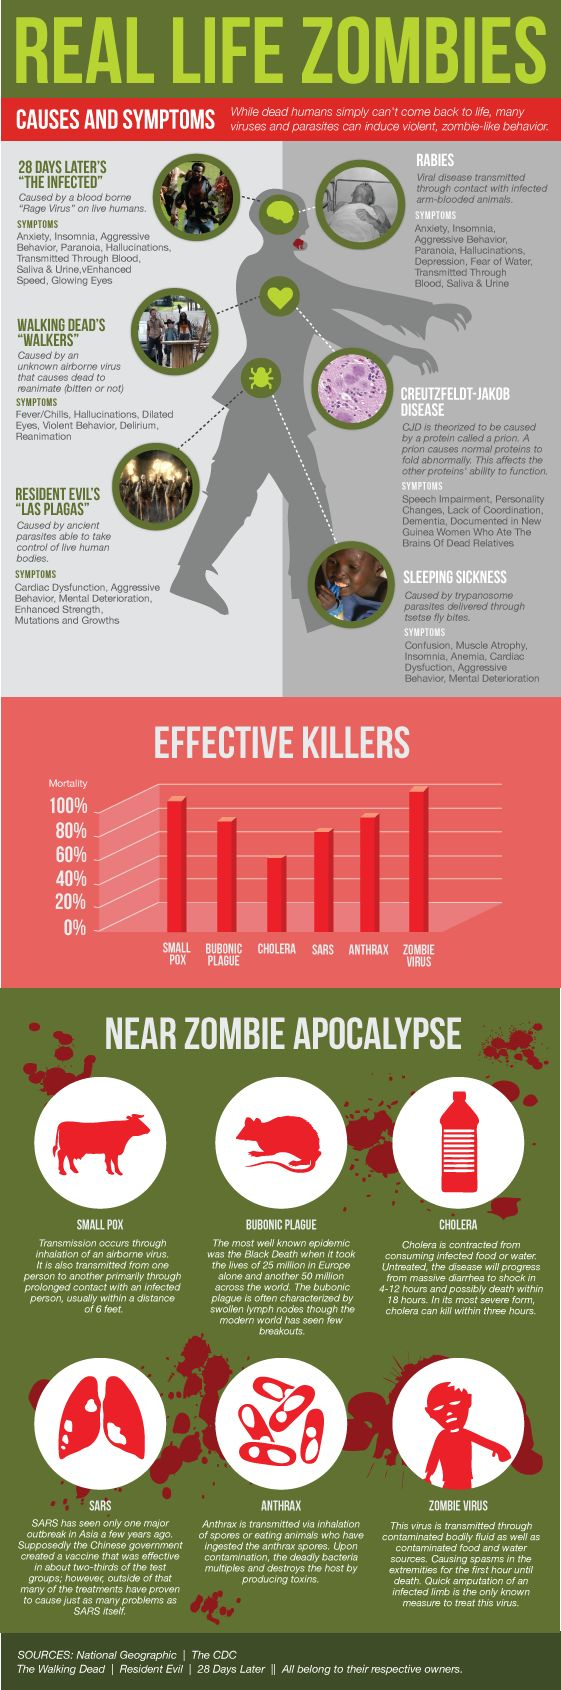 Real Life Zombies   #Infographic #Zombie #Virus